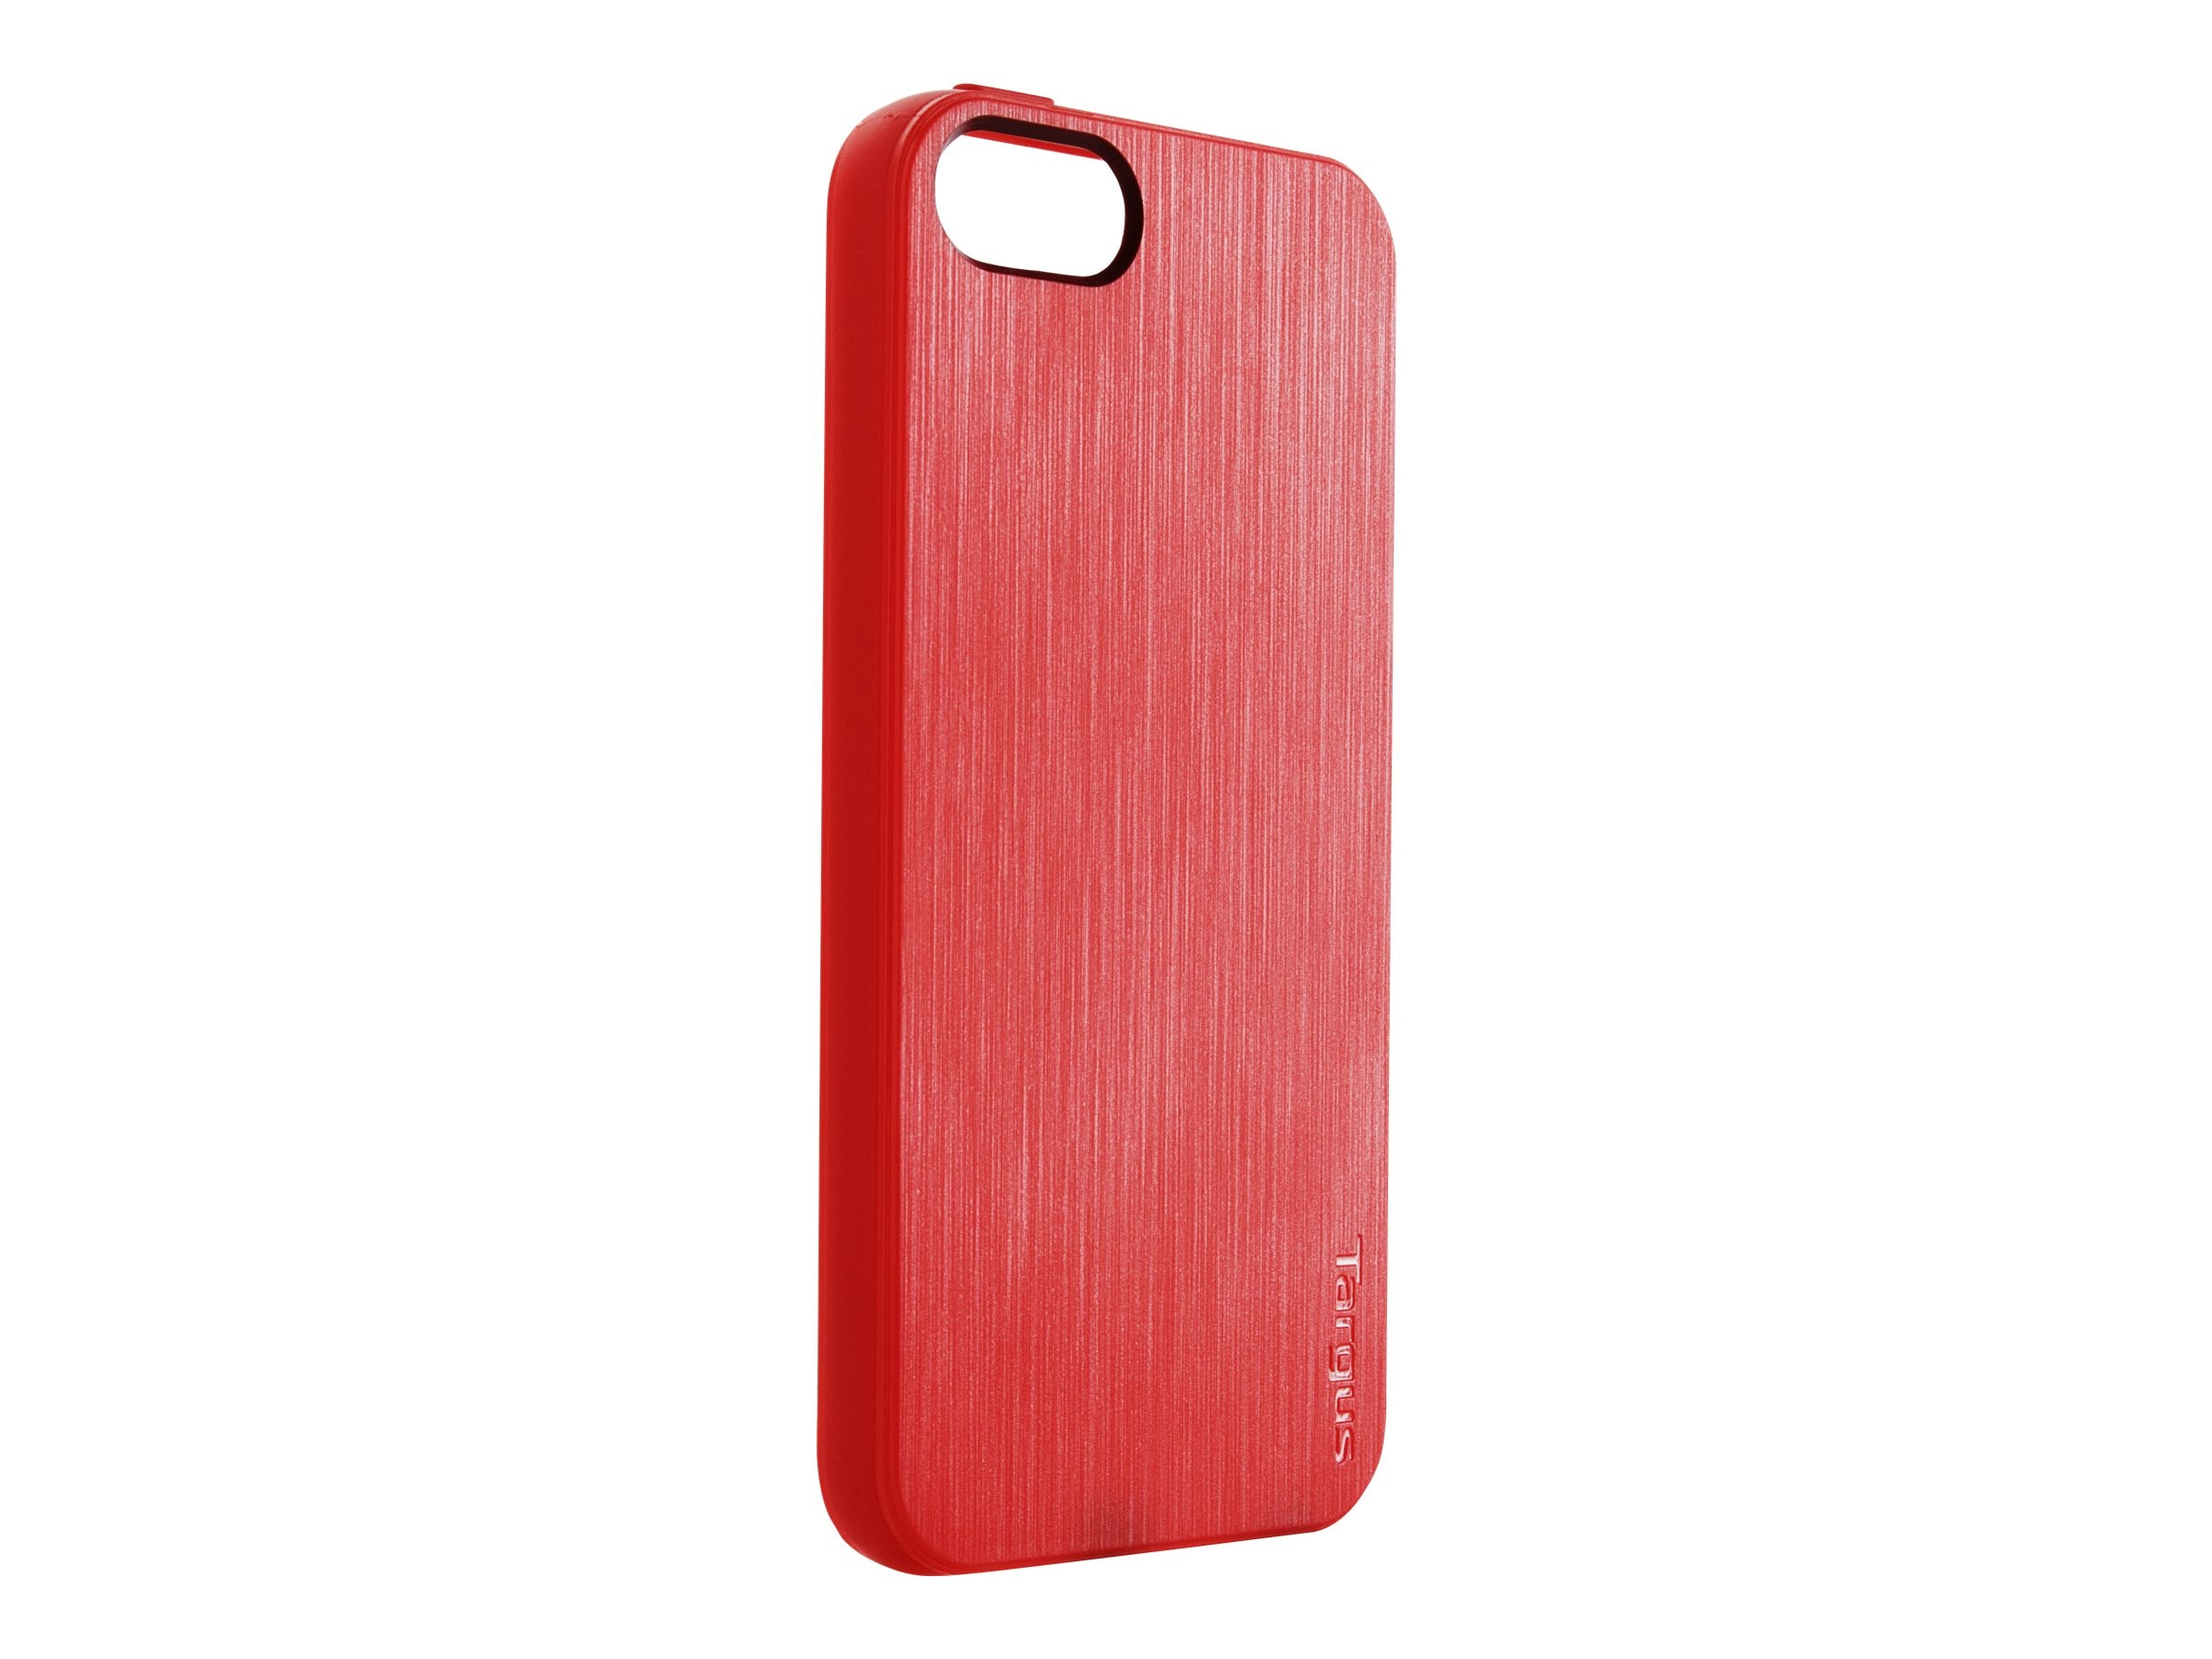 Targus Slim-Fit Back Cover for iPhone 5, Red, THD03103US, 14765688, Carrying Cases - Phones/PDAs